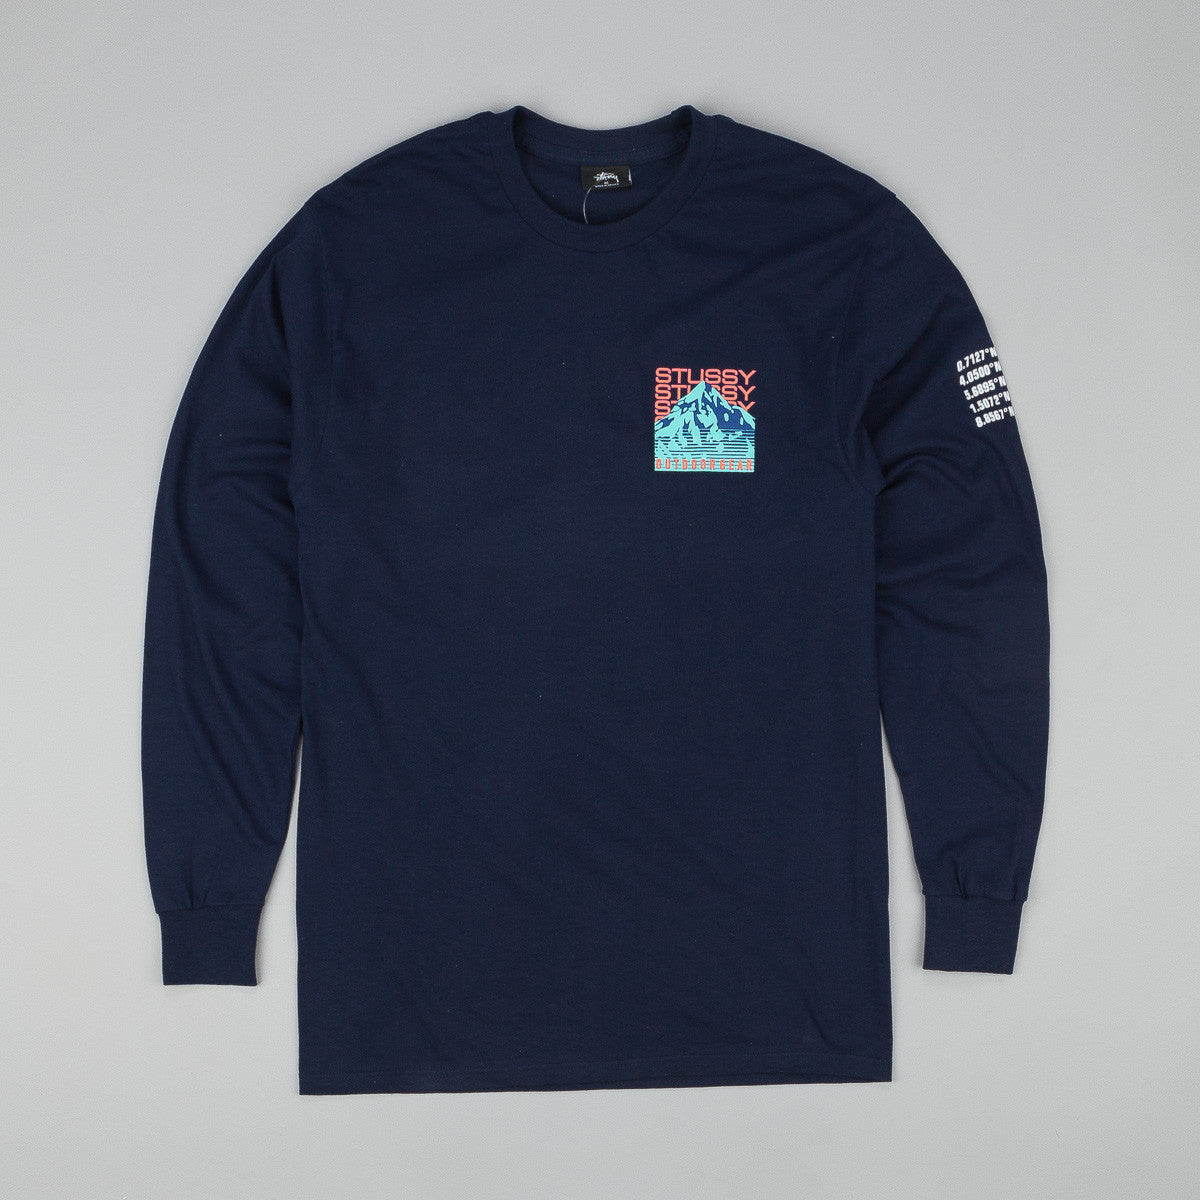 Stussy Outdoor Gear Long Sleeve T-Shirt